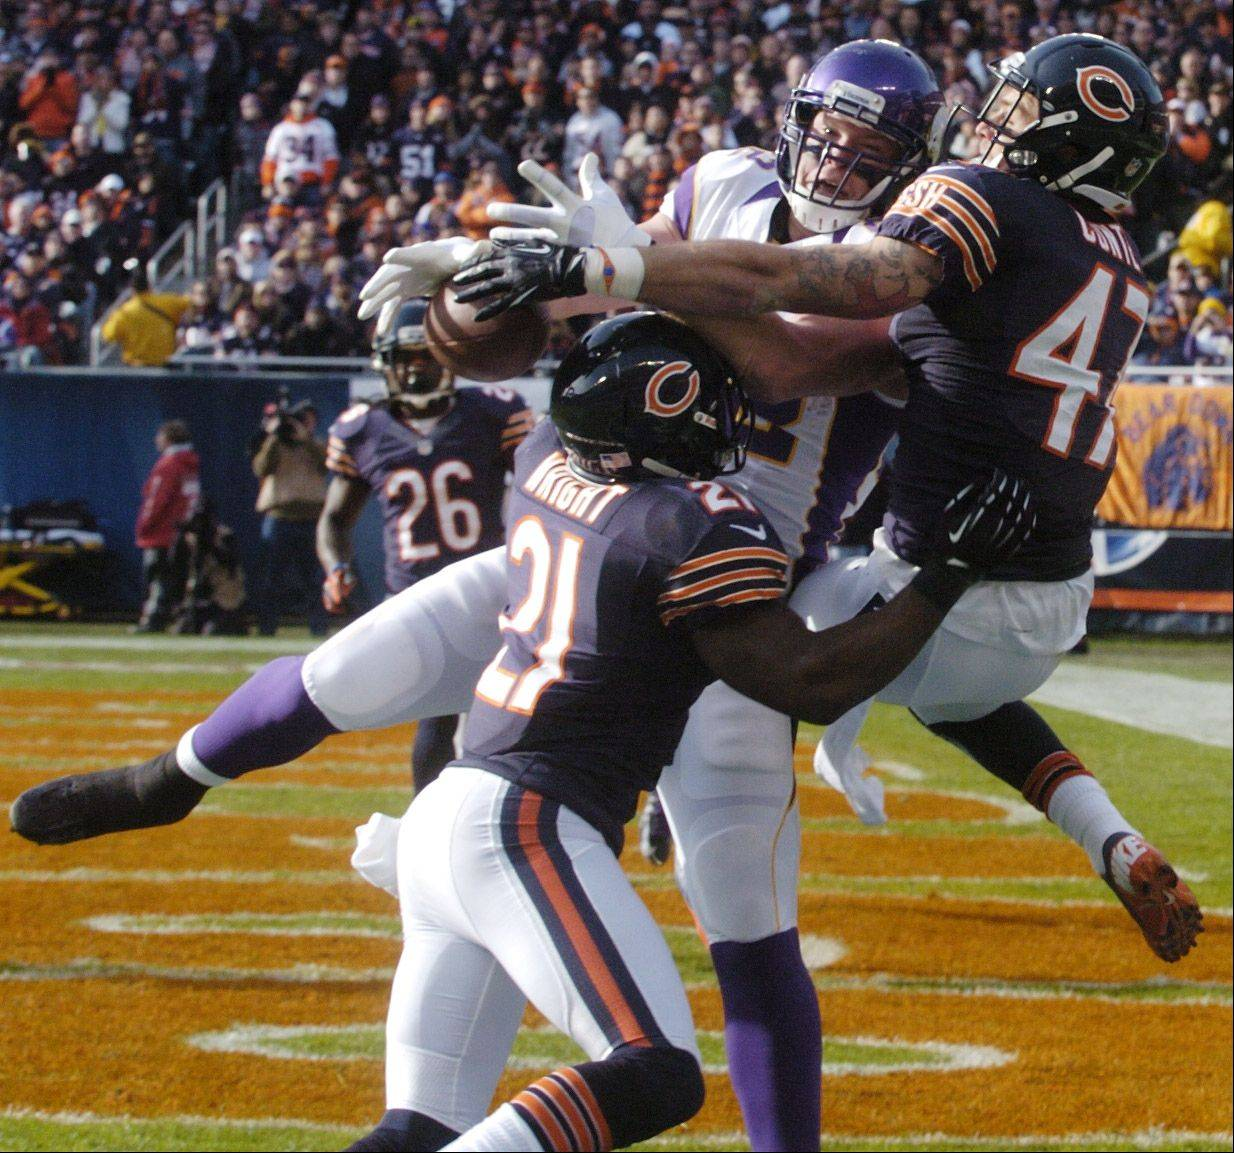 Chicago Bears strong safety Major Wright, left, and free safety Chris Conte force an incompletion by Minnesota Vikings tight end Kyle Rudolph in the end zone during the second quarter at Soldier Field Sunday.